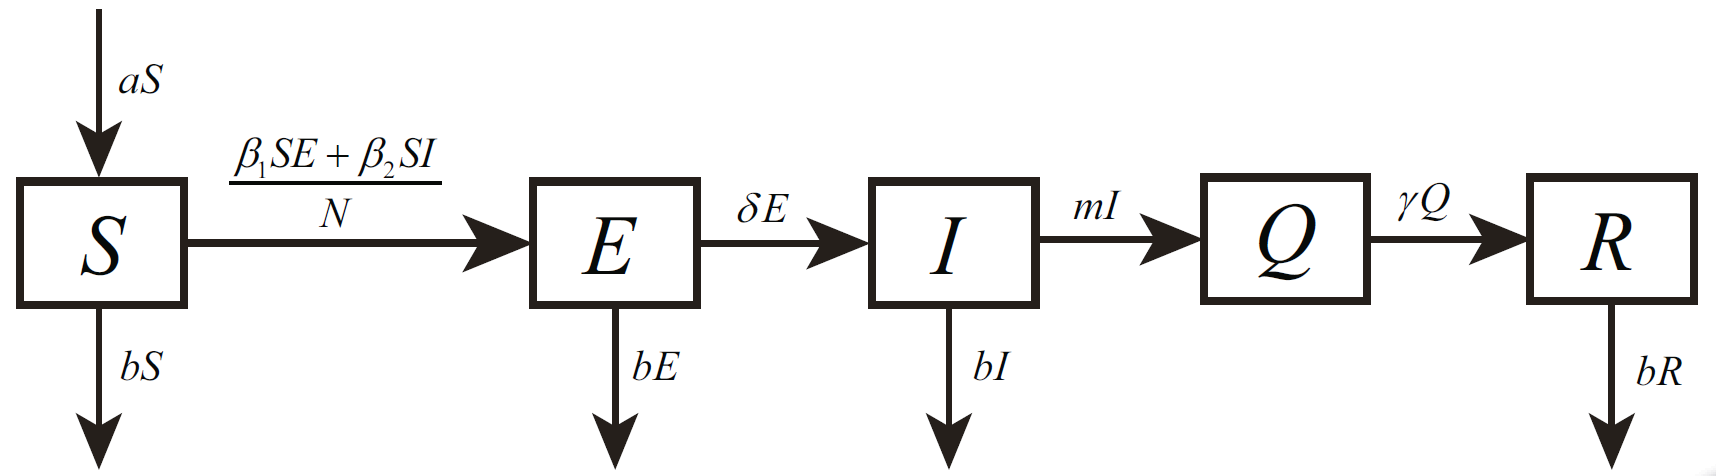 FIG. 1: Transmission diagram of COVID-19 in Wuhan before lockdown. S(t), E(t), I(t), Q(t) and R(t) represent the susceptible, exposed, infected, confirmed and removed populations.